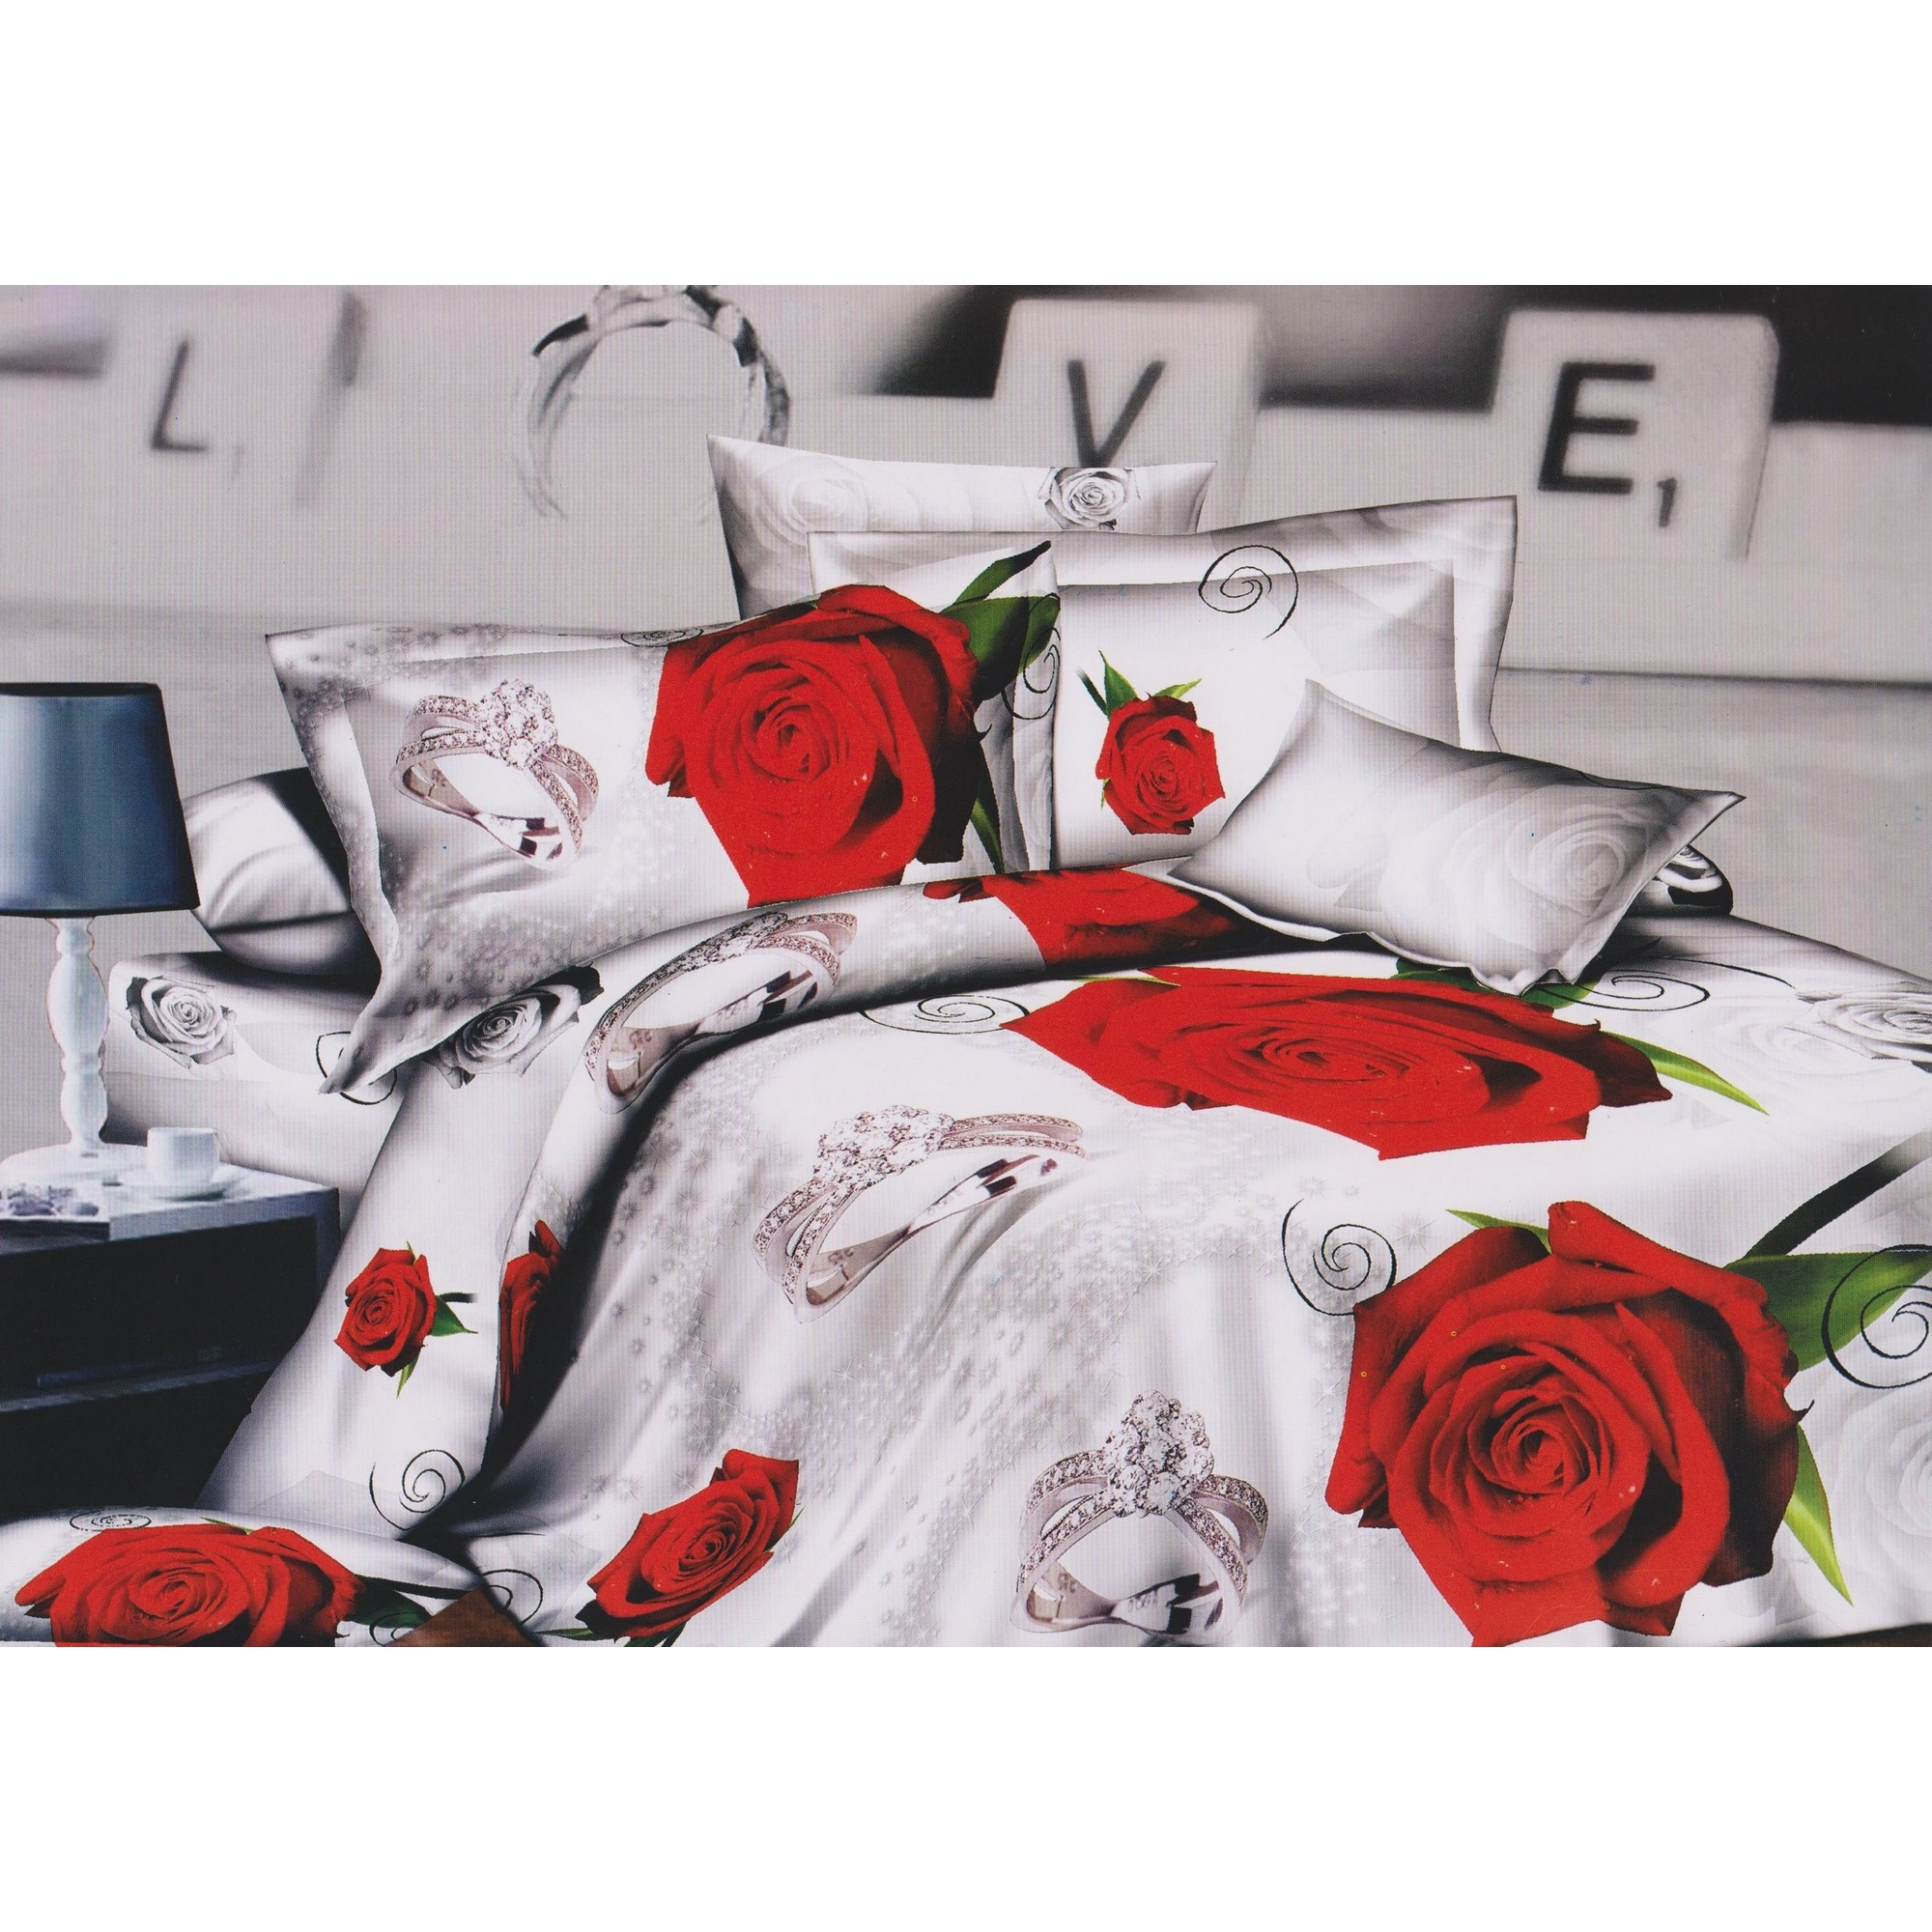 bettw sche set mit rosen diamantenring design wei und rot ebay. Black Bedroom Furniture Sets. Home Design Ideas